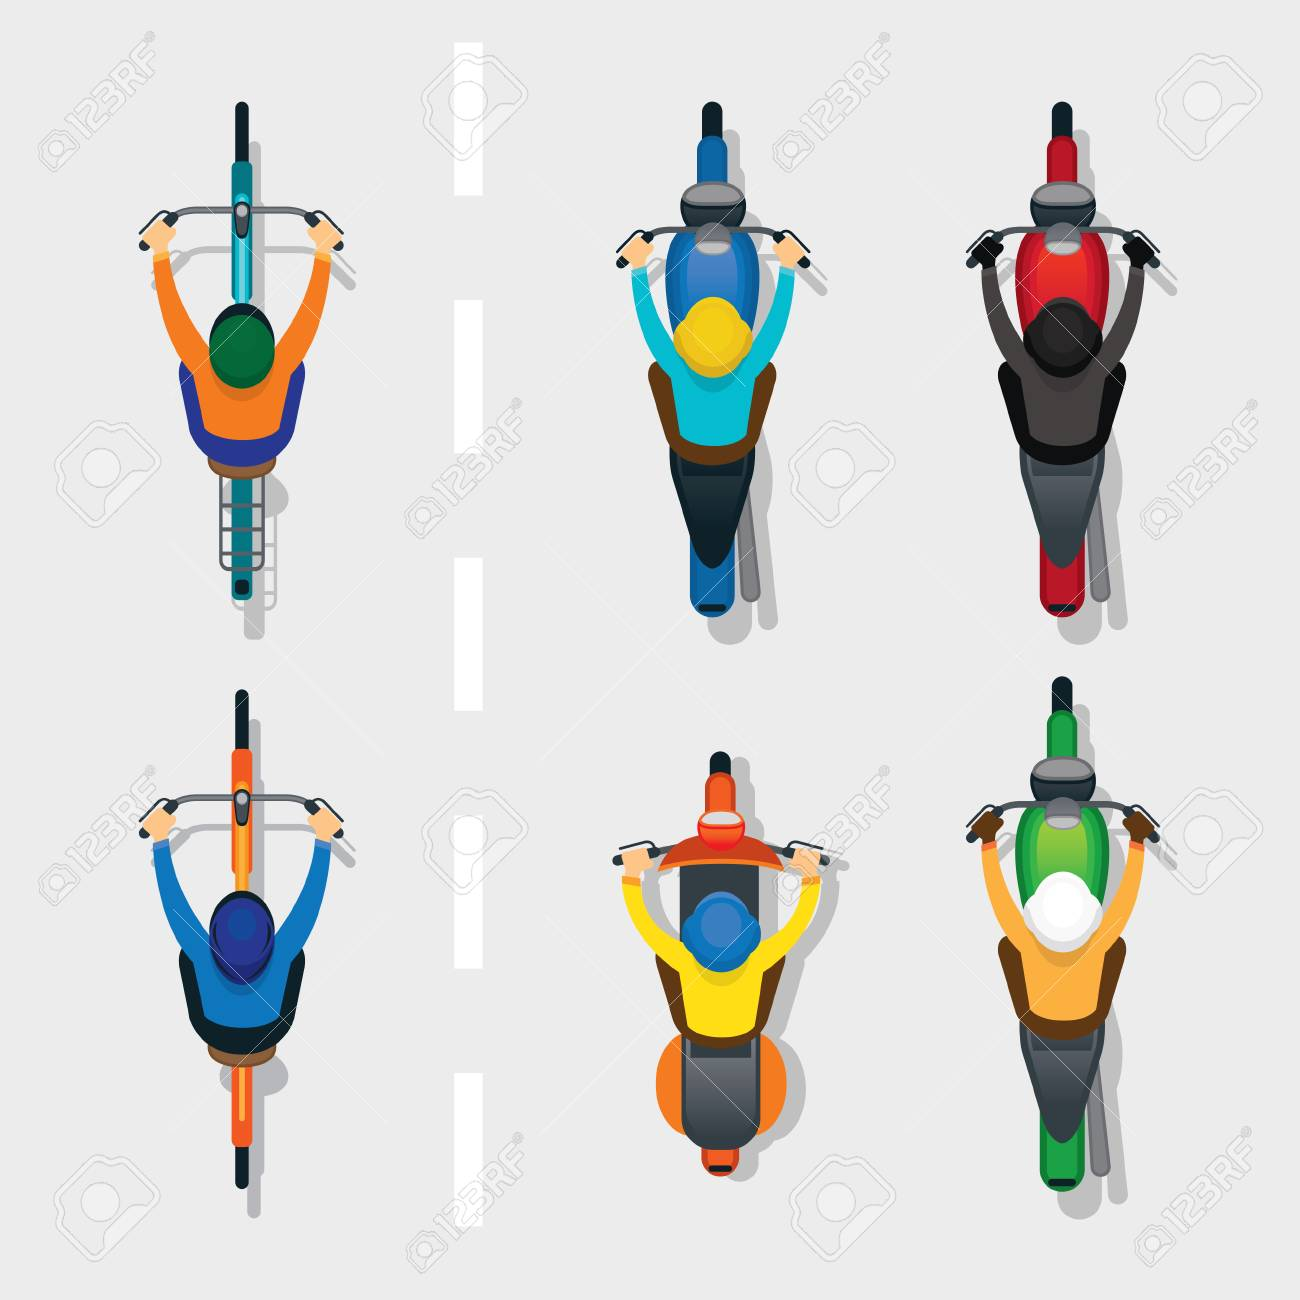 People on Motorcycles and Bicycles Top or Above View, on the Road, Automobile and Transportation - 85276608